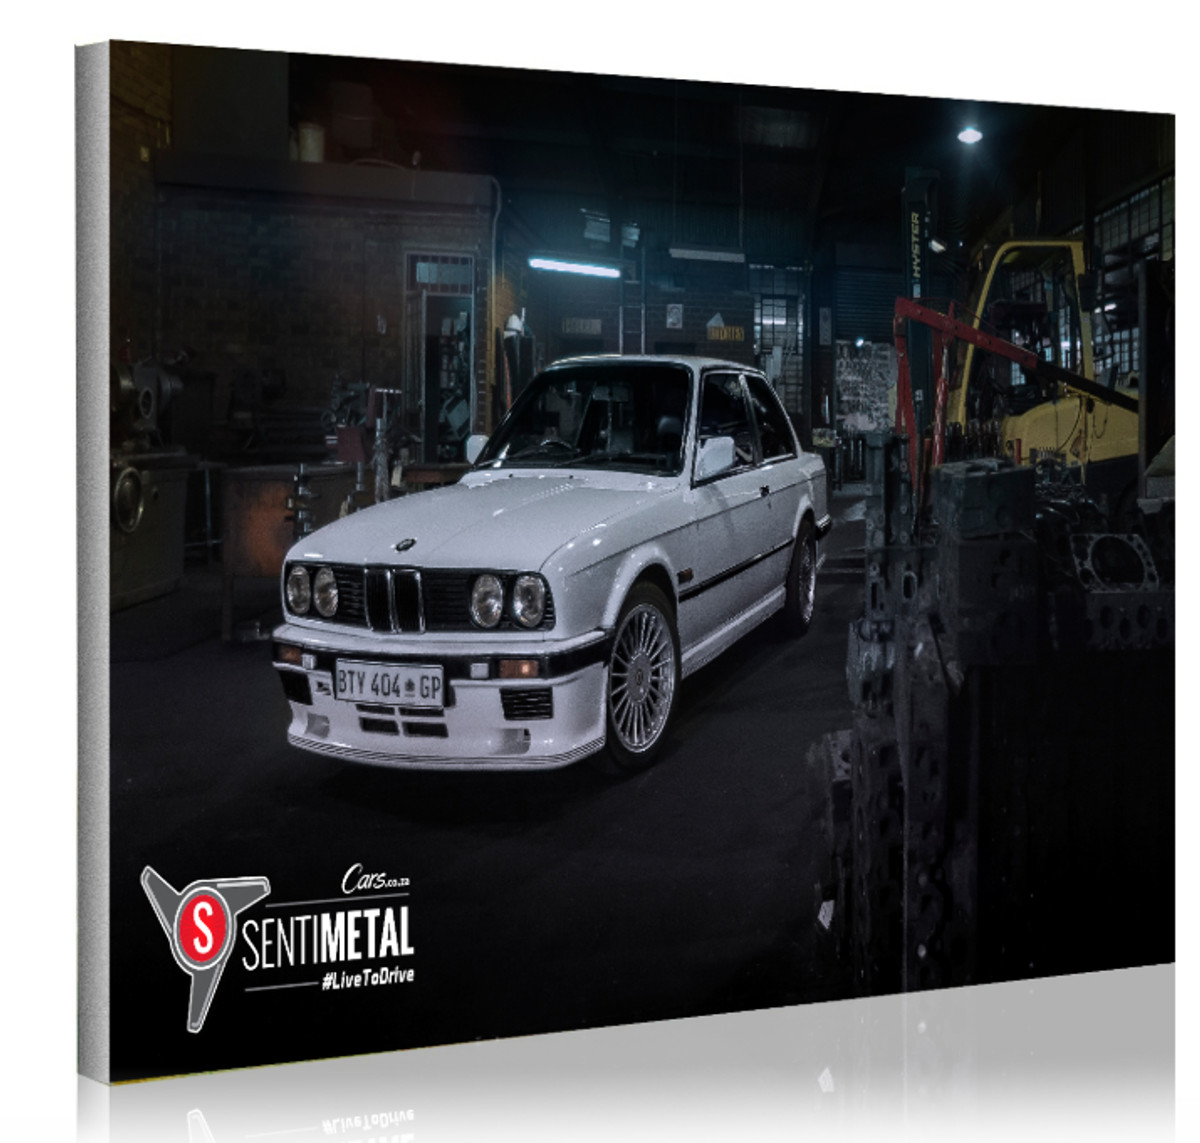 Want to brighten up that man-cave with some cool, high-quality automotive-themed prints? Or perhaps you're looking for a gift for that petrolheaded friend ...